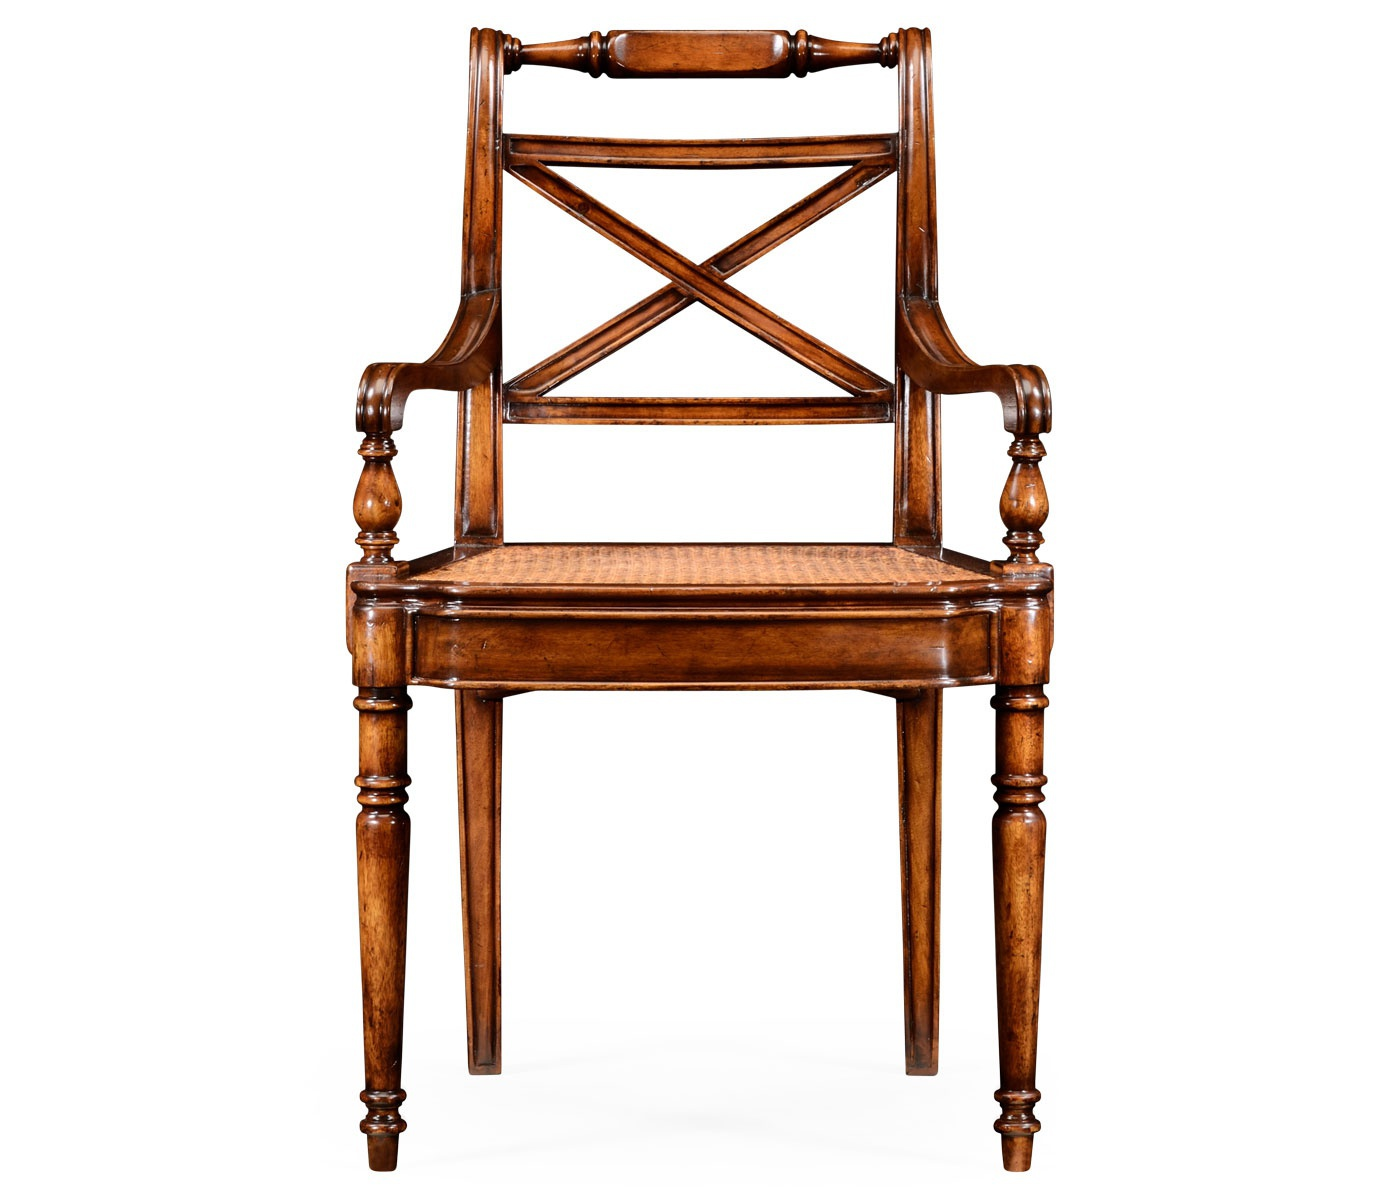 Dining Room Supervisor Job Description: Chair Wood With Wicker Seat Cane Windsor, Jonathan Charles